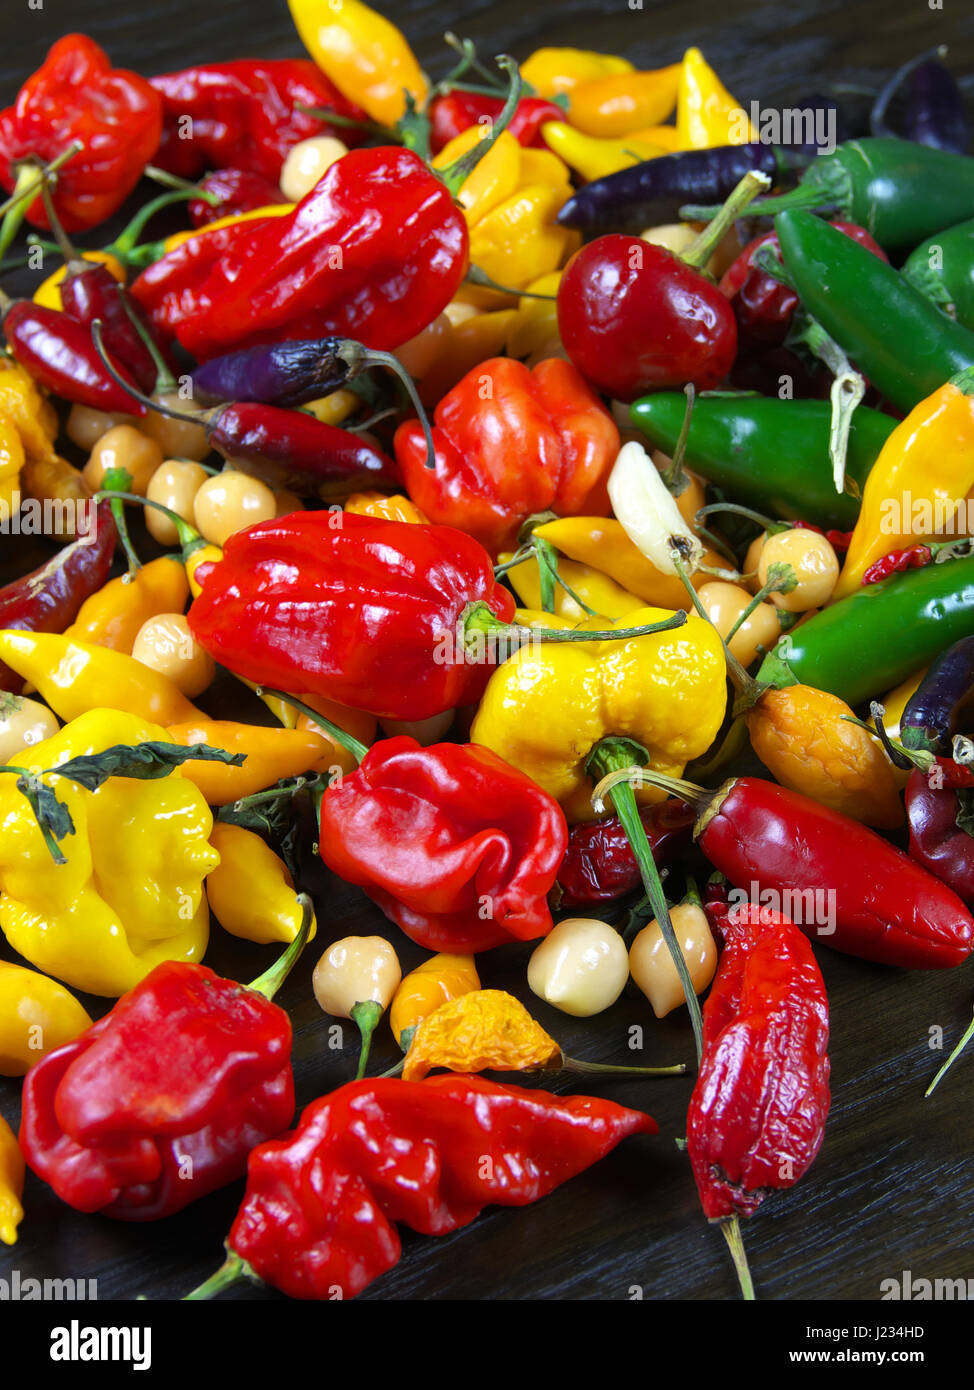 organic-red-green-and-yellow-chili-peppe